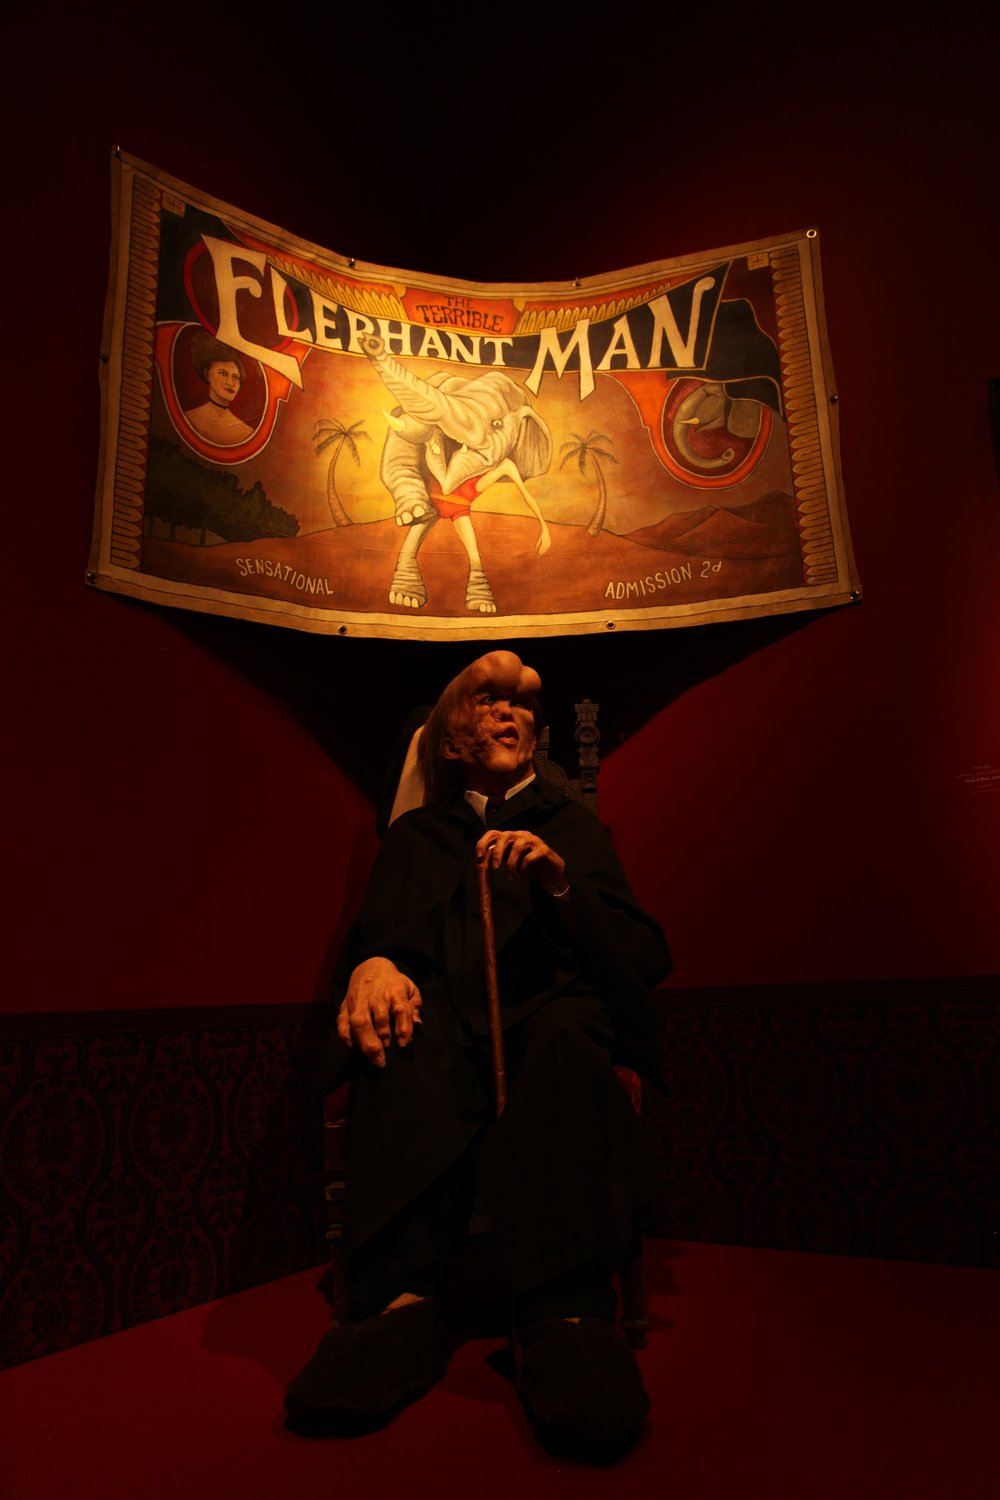 Del Toro's communion with all freaks is embodied by John Merrick, aka Elephant Man.